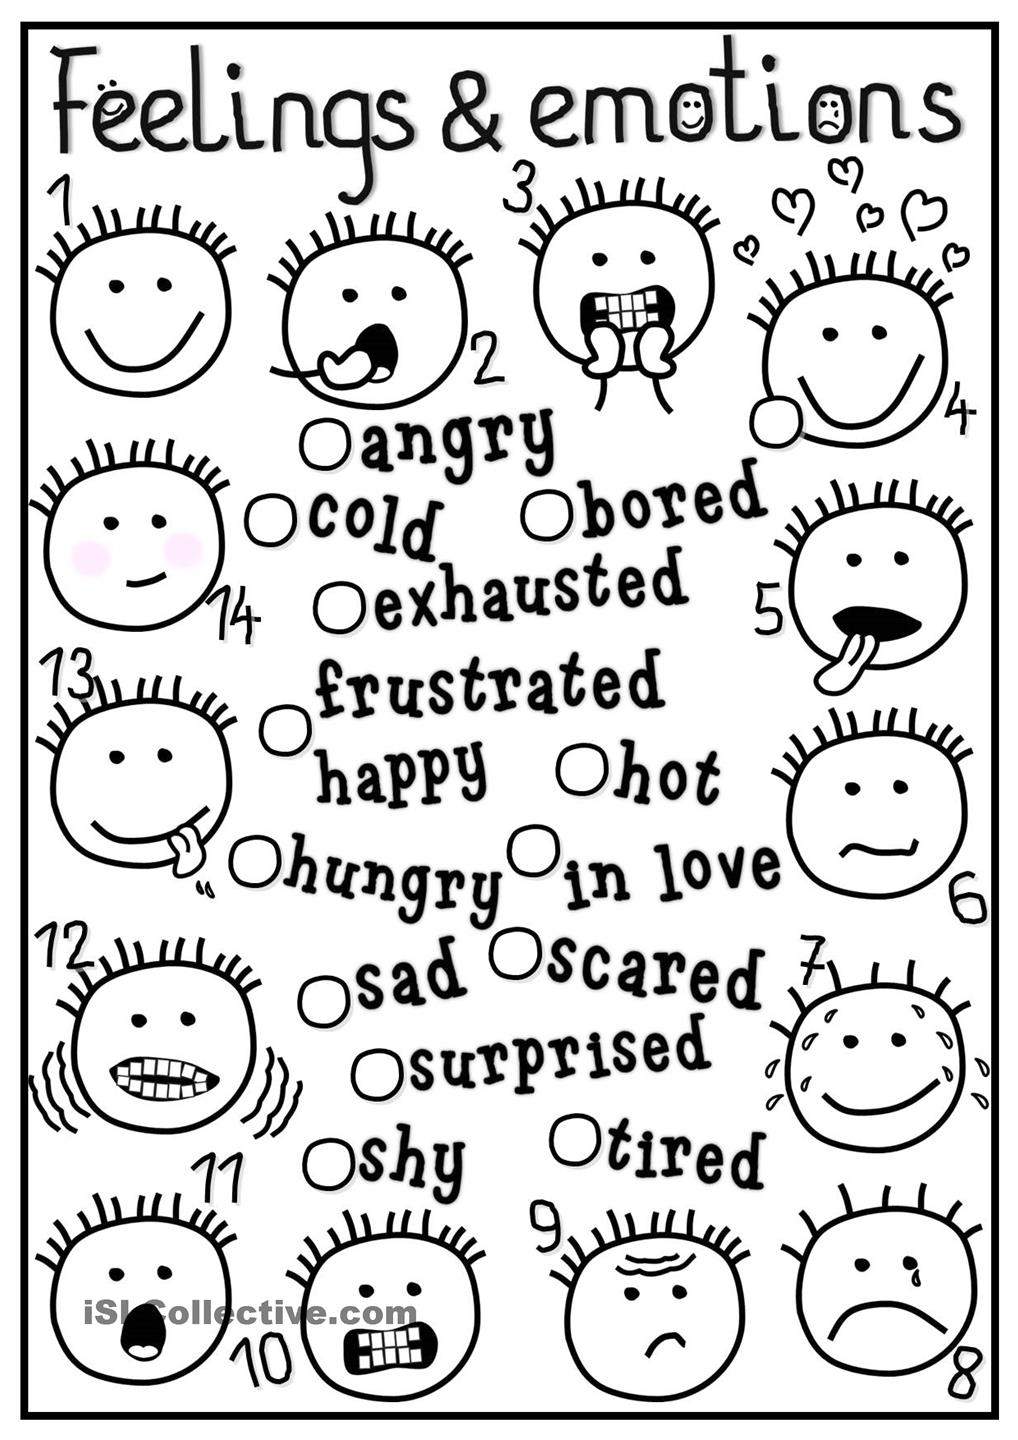 free printable emotions coloring pages - photo#9